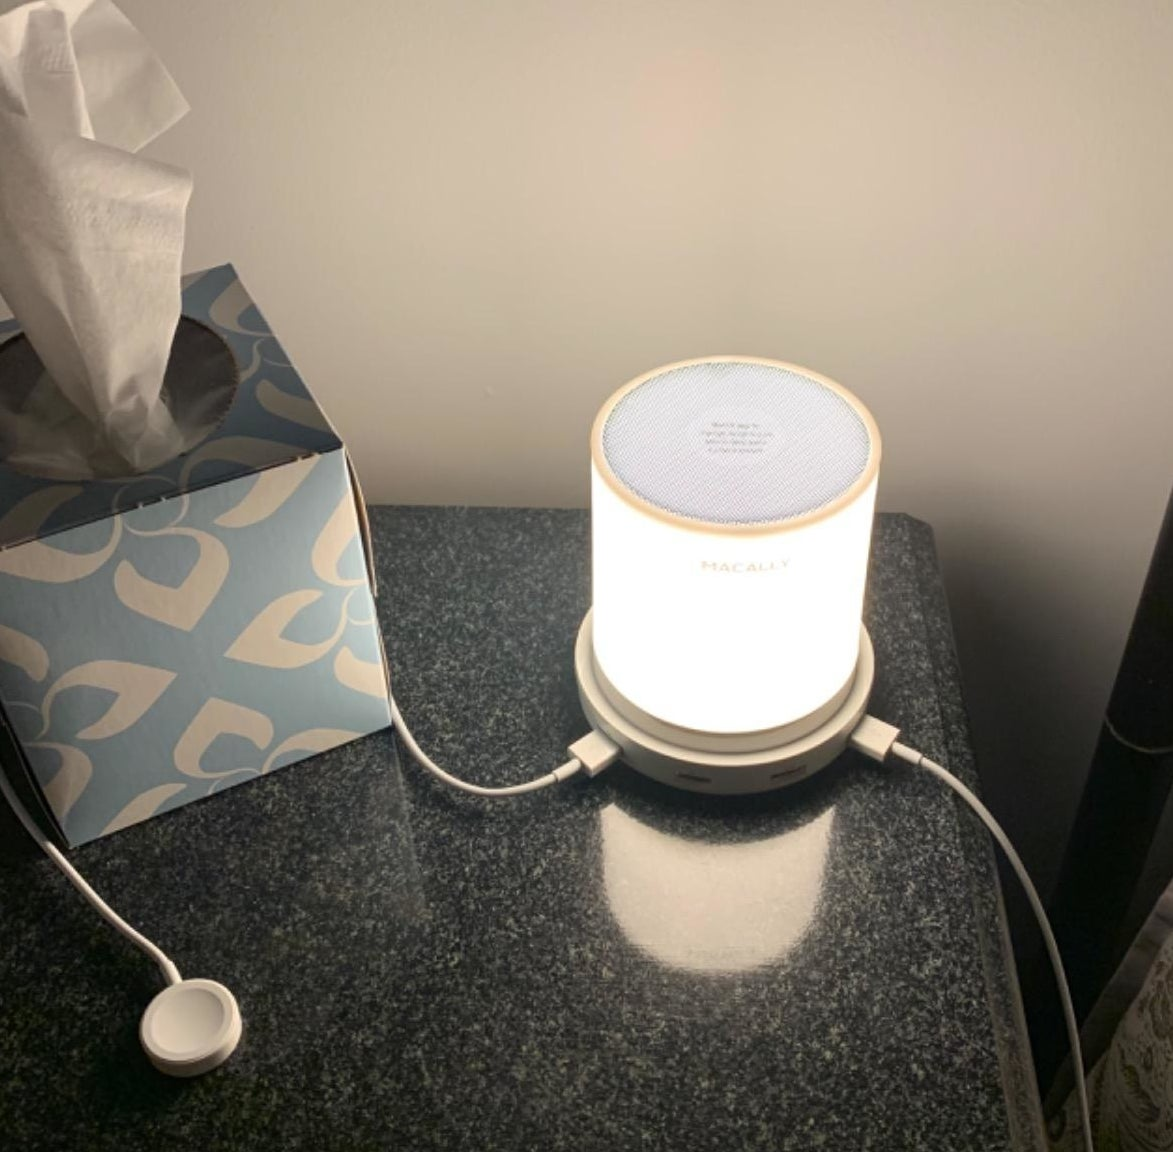 reviewer's lamp on a bedside table with a couple chargers plugged into it